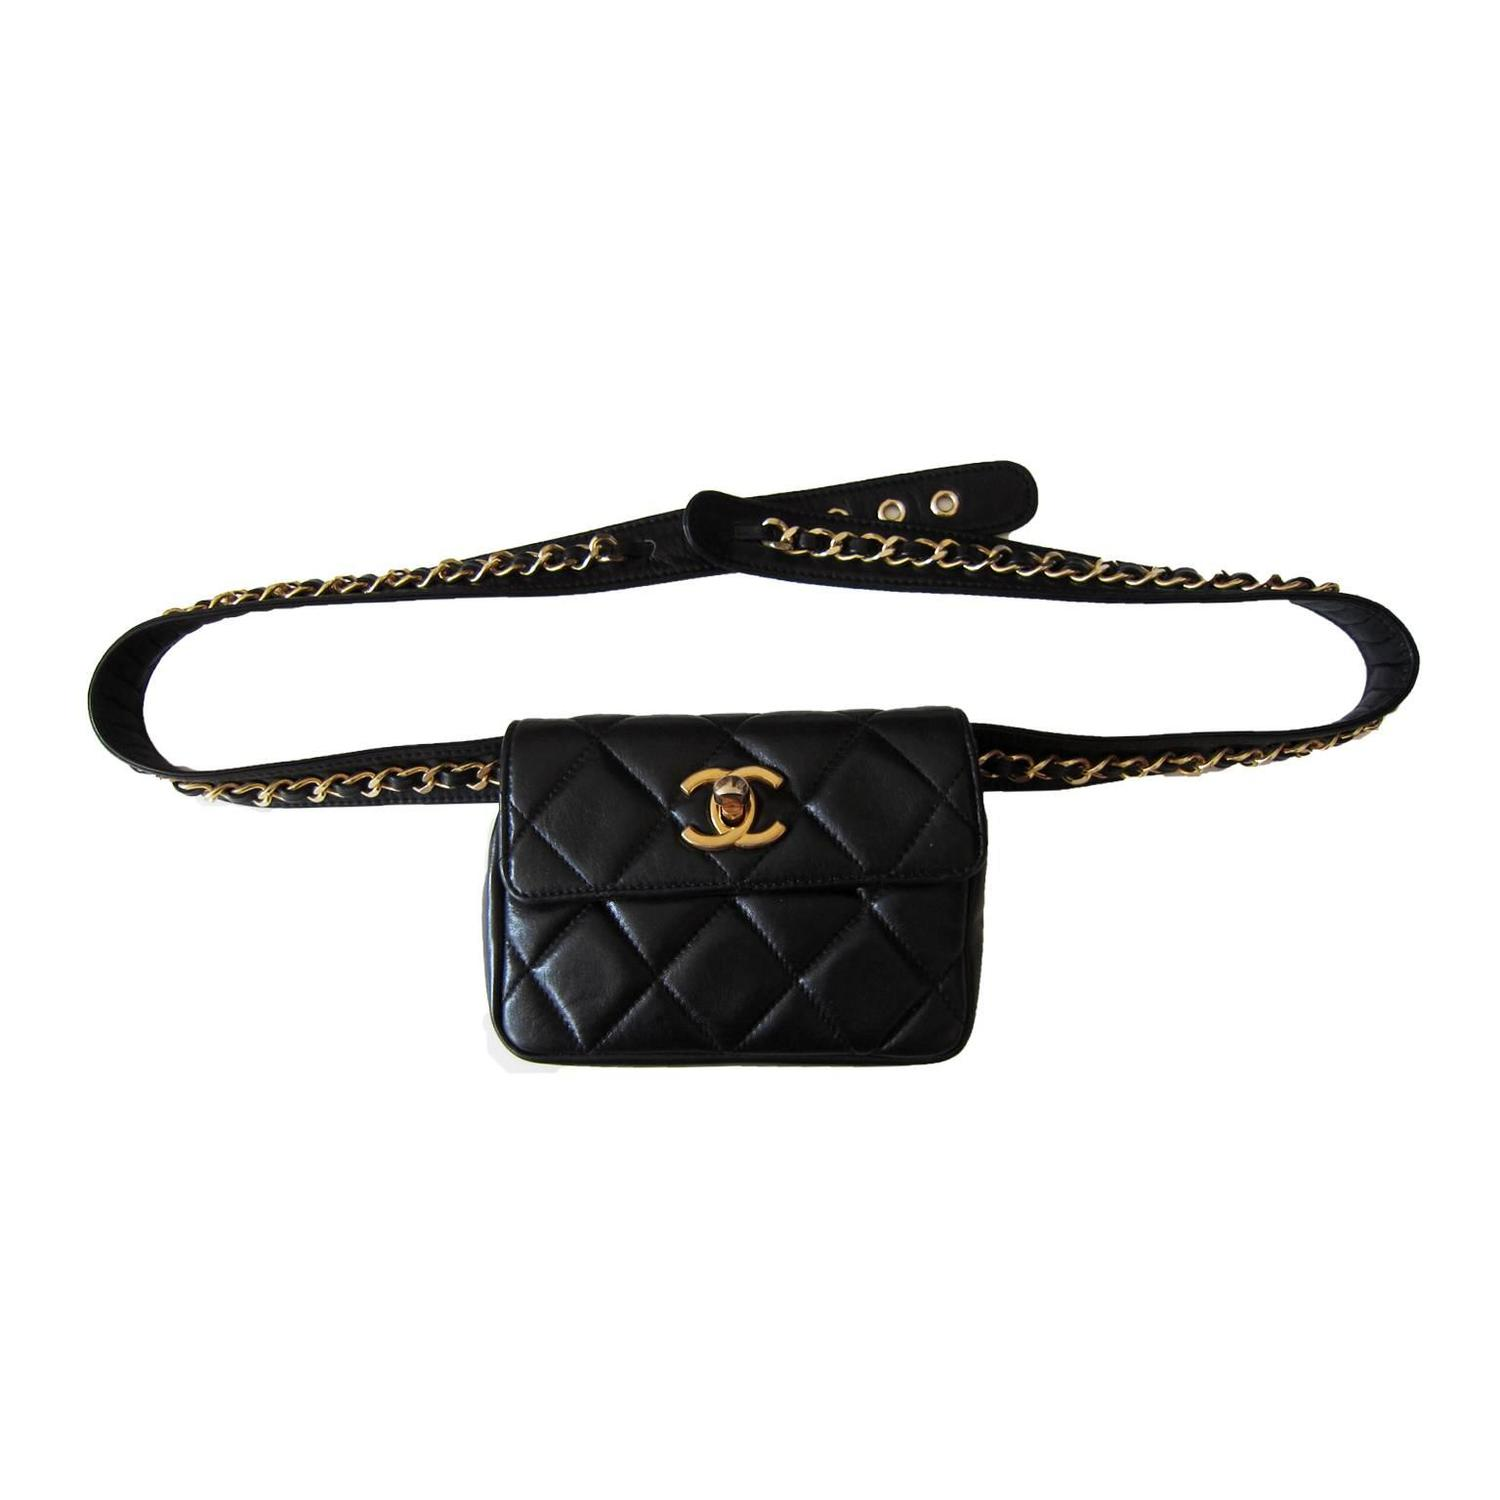 Black and gold purses